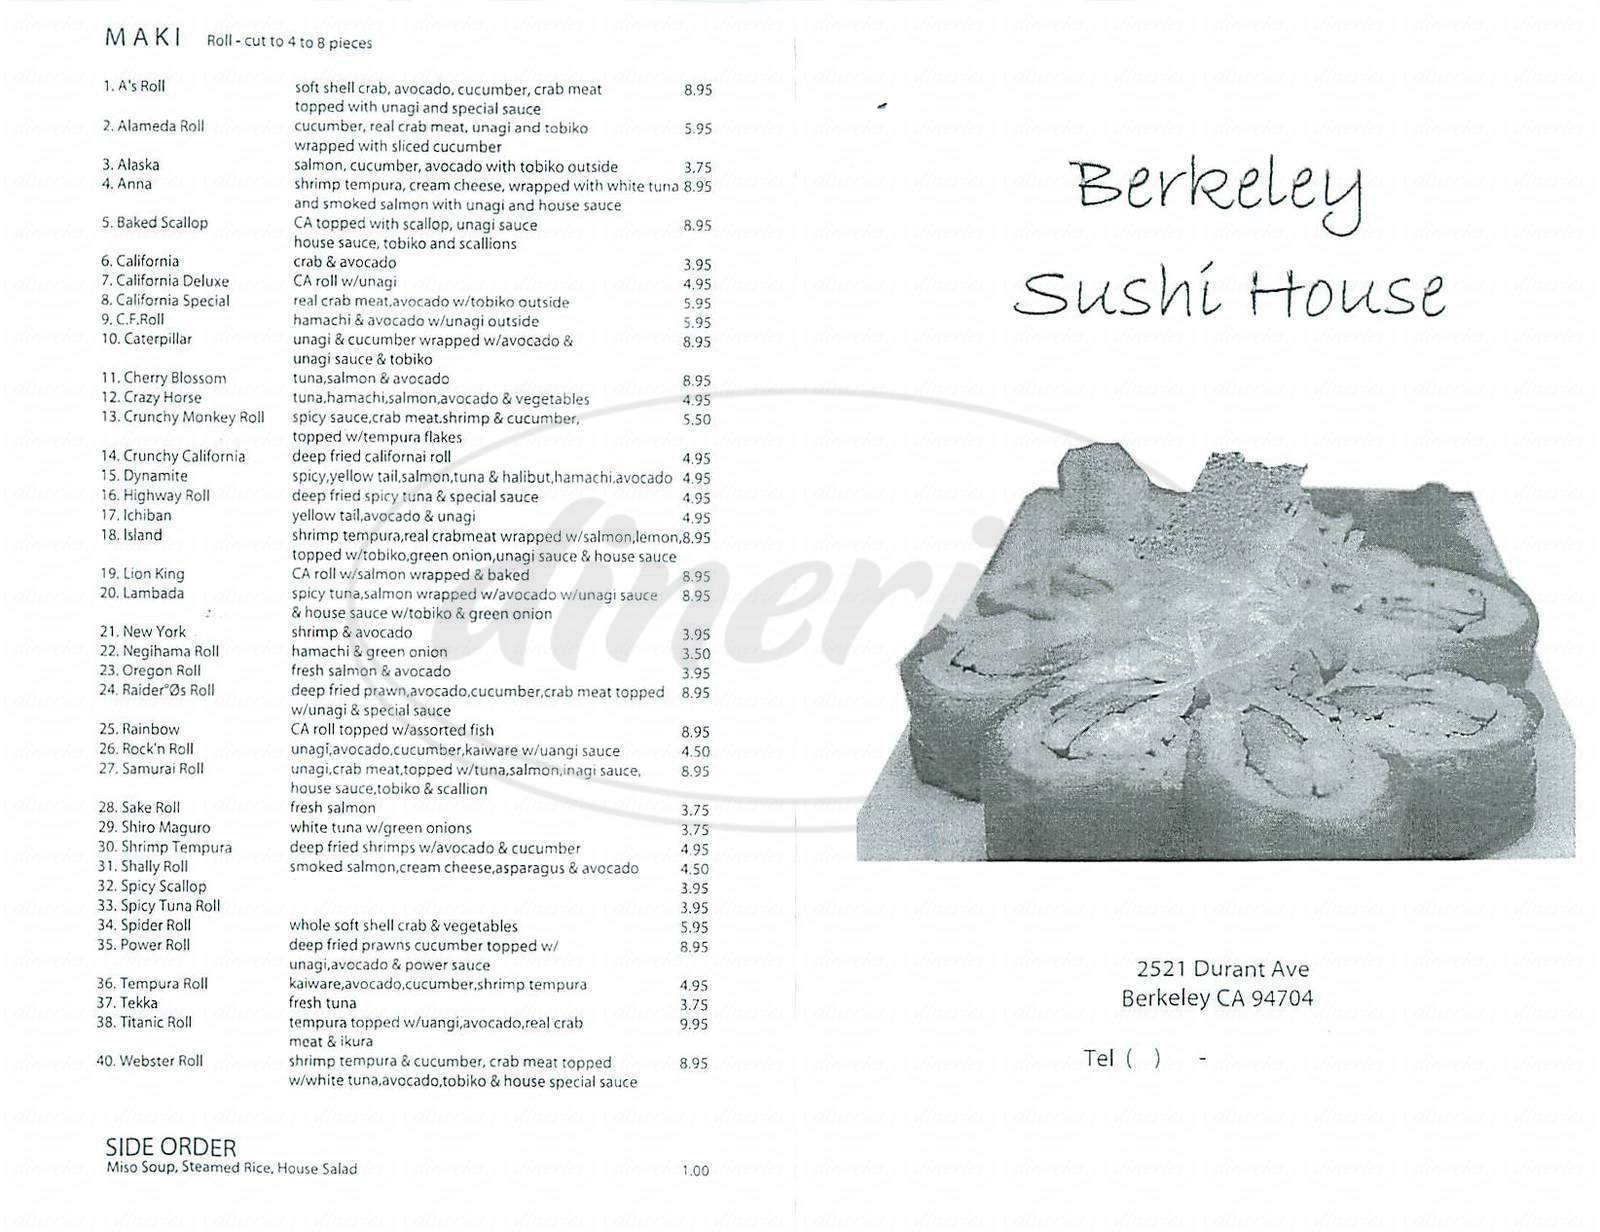 menu for Berkeley Sushi House